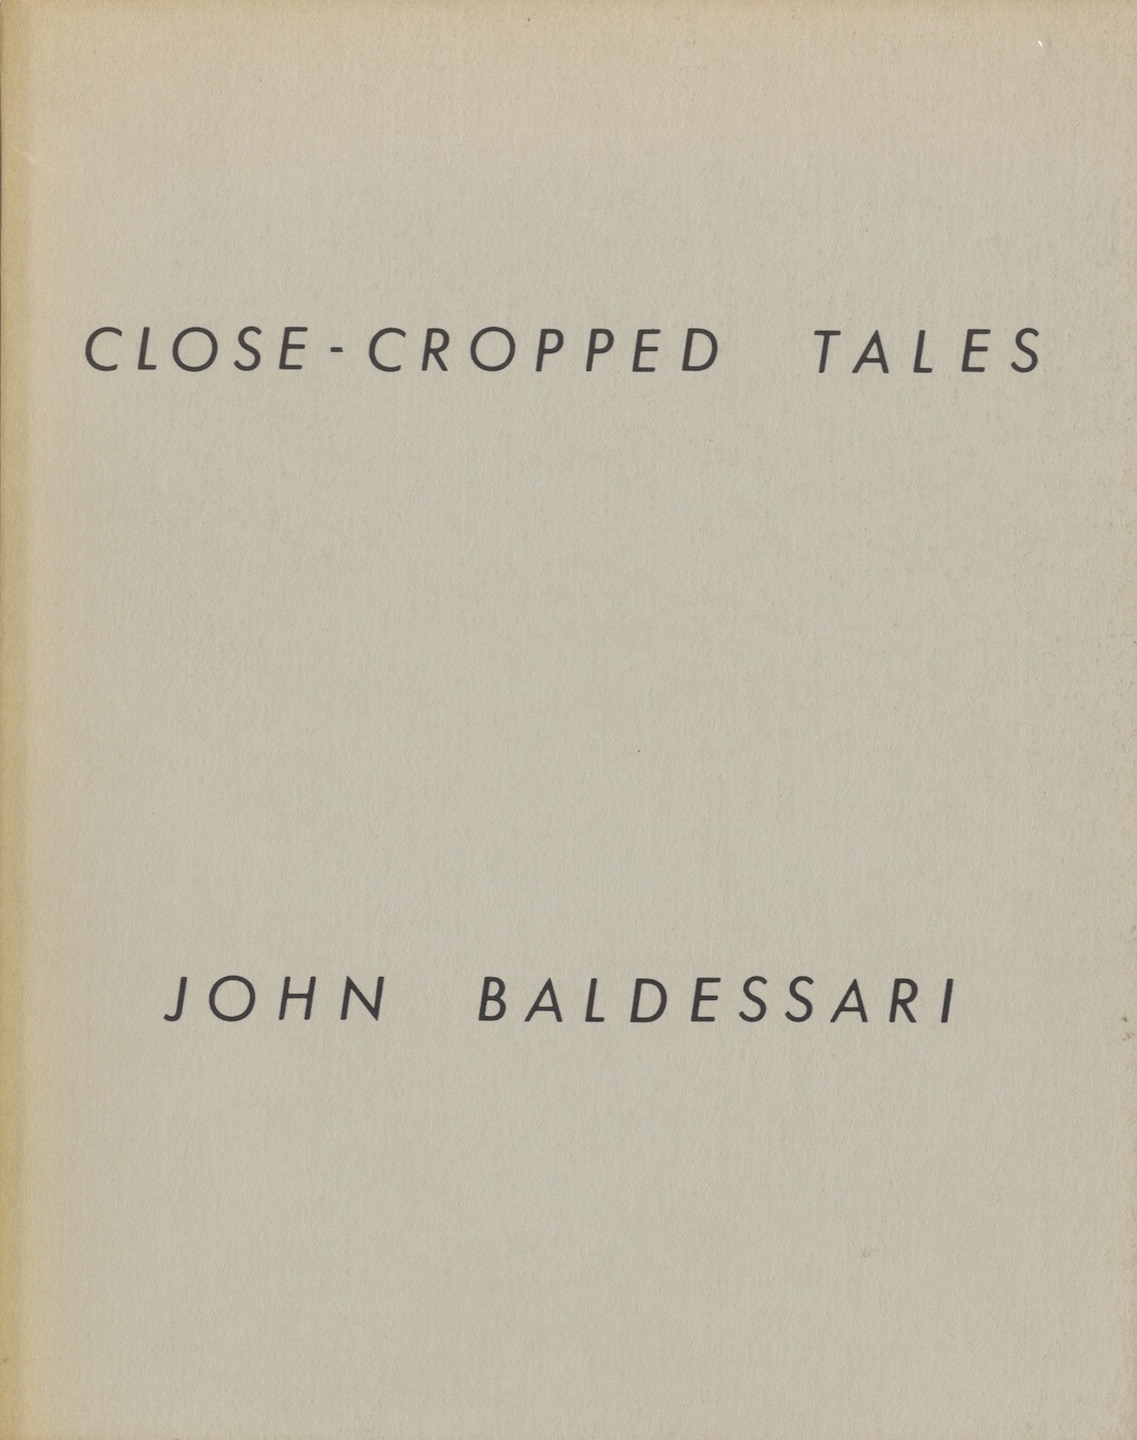 John Baldessari: Close-Cropped Tales